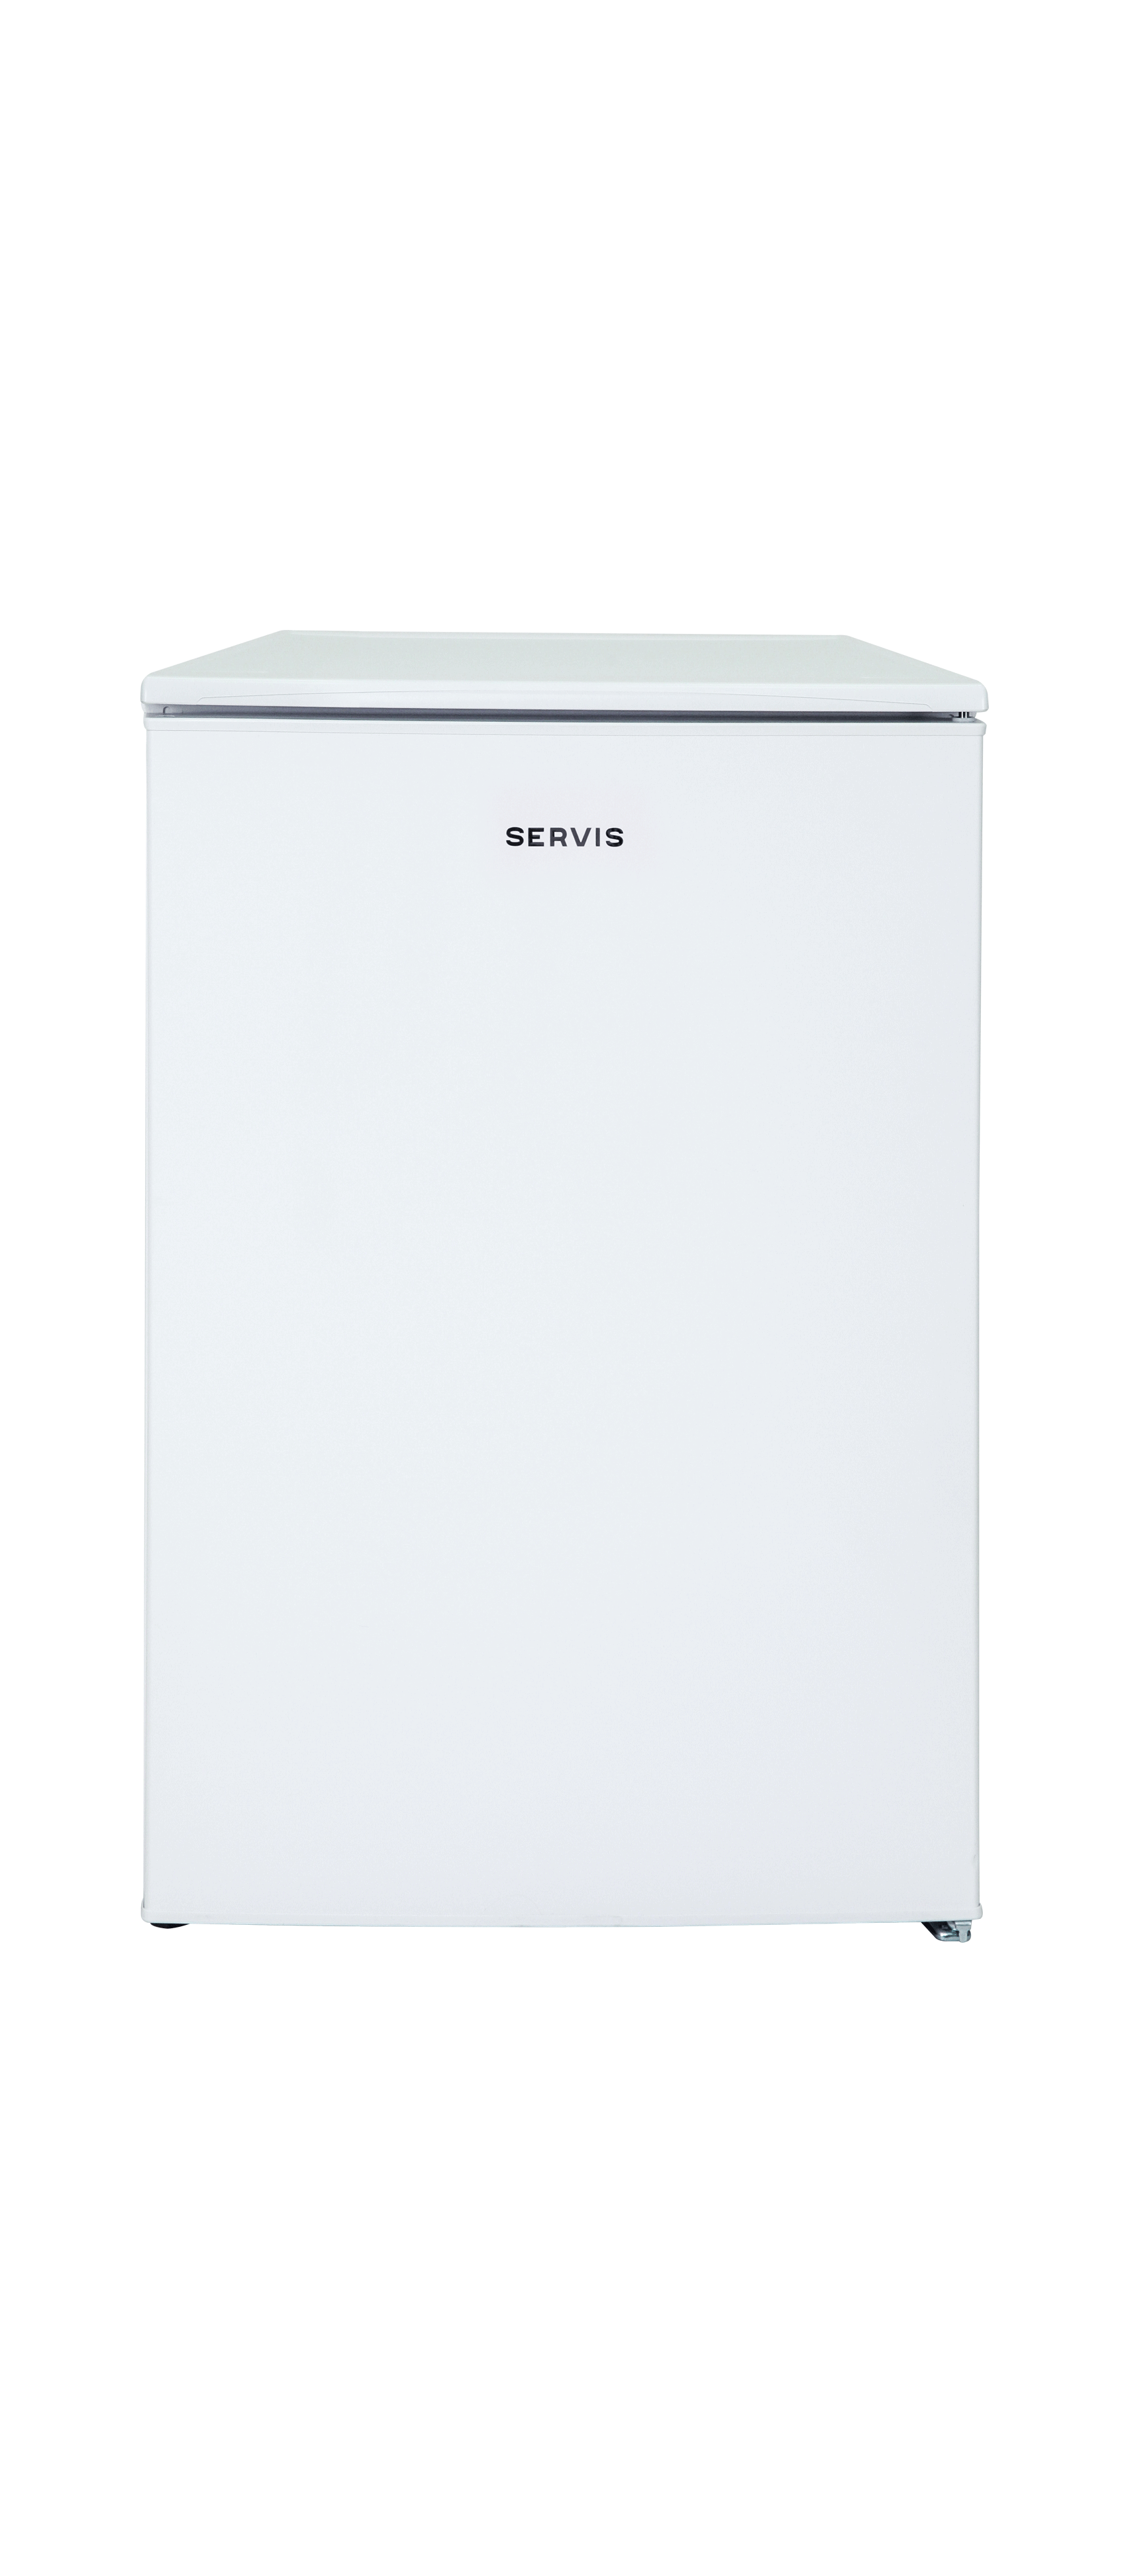 UR55W - Undercounter Icebox Fridge